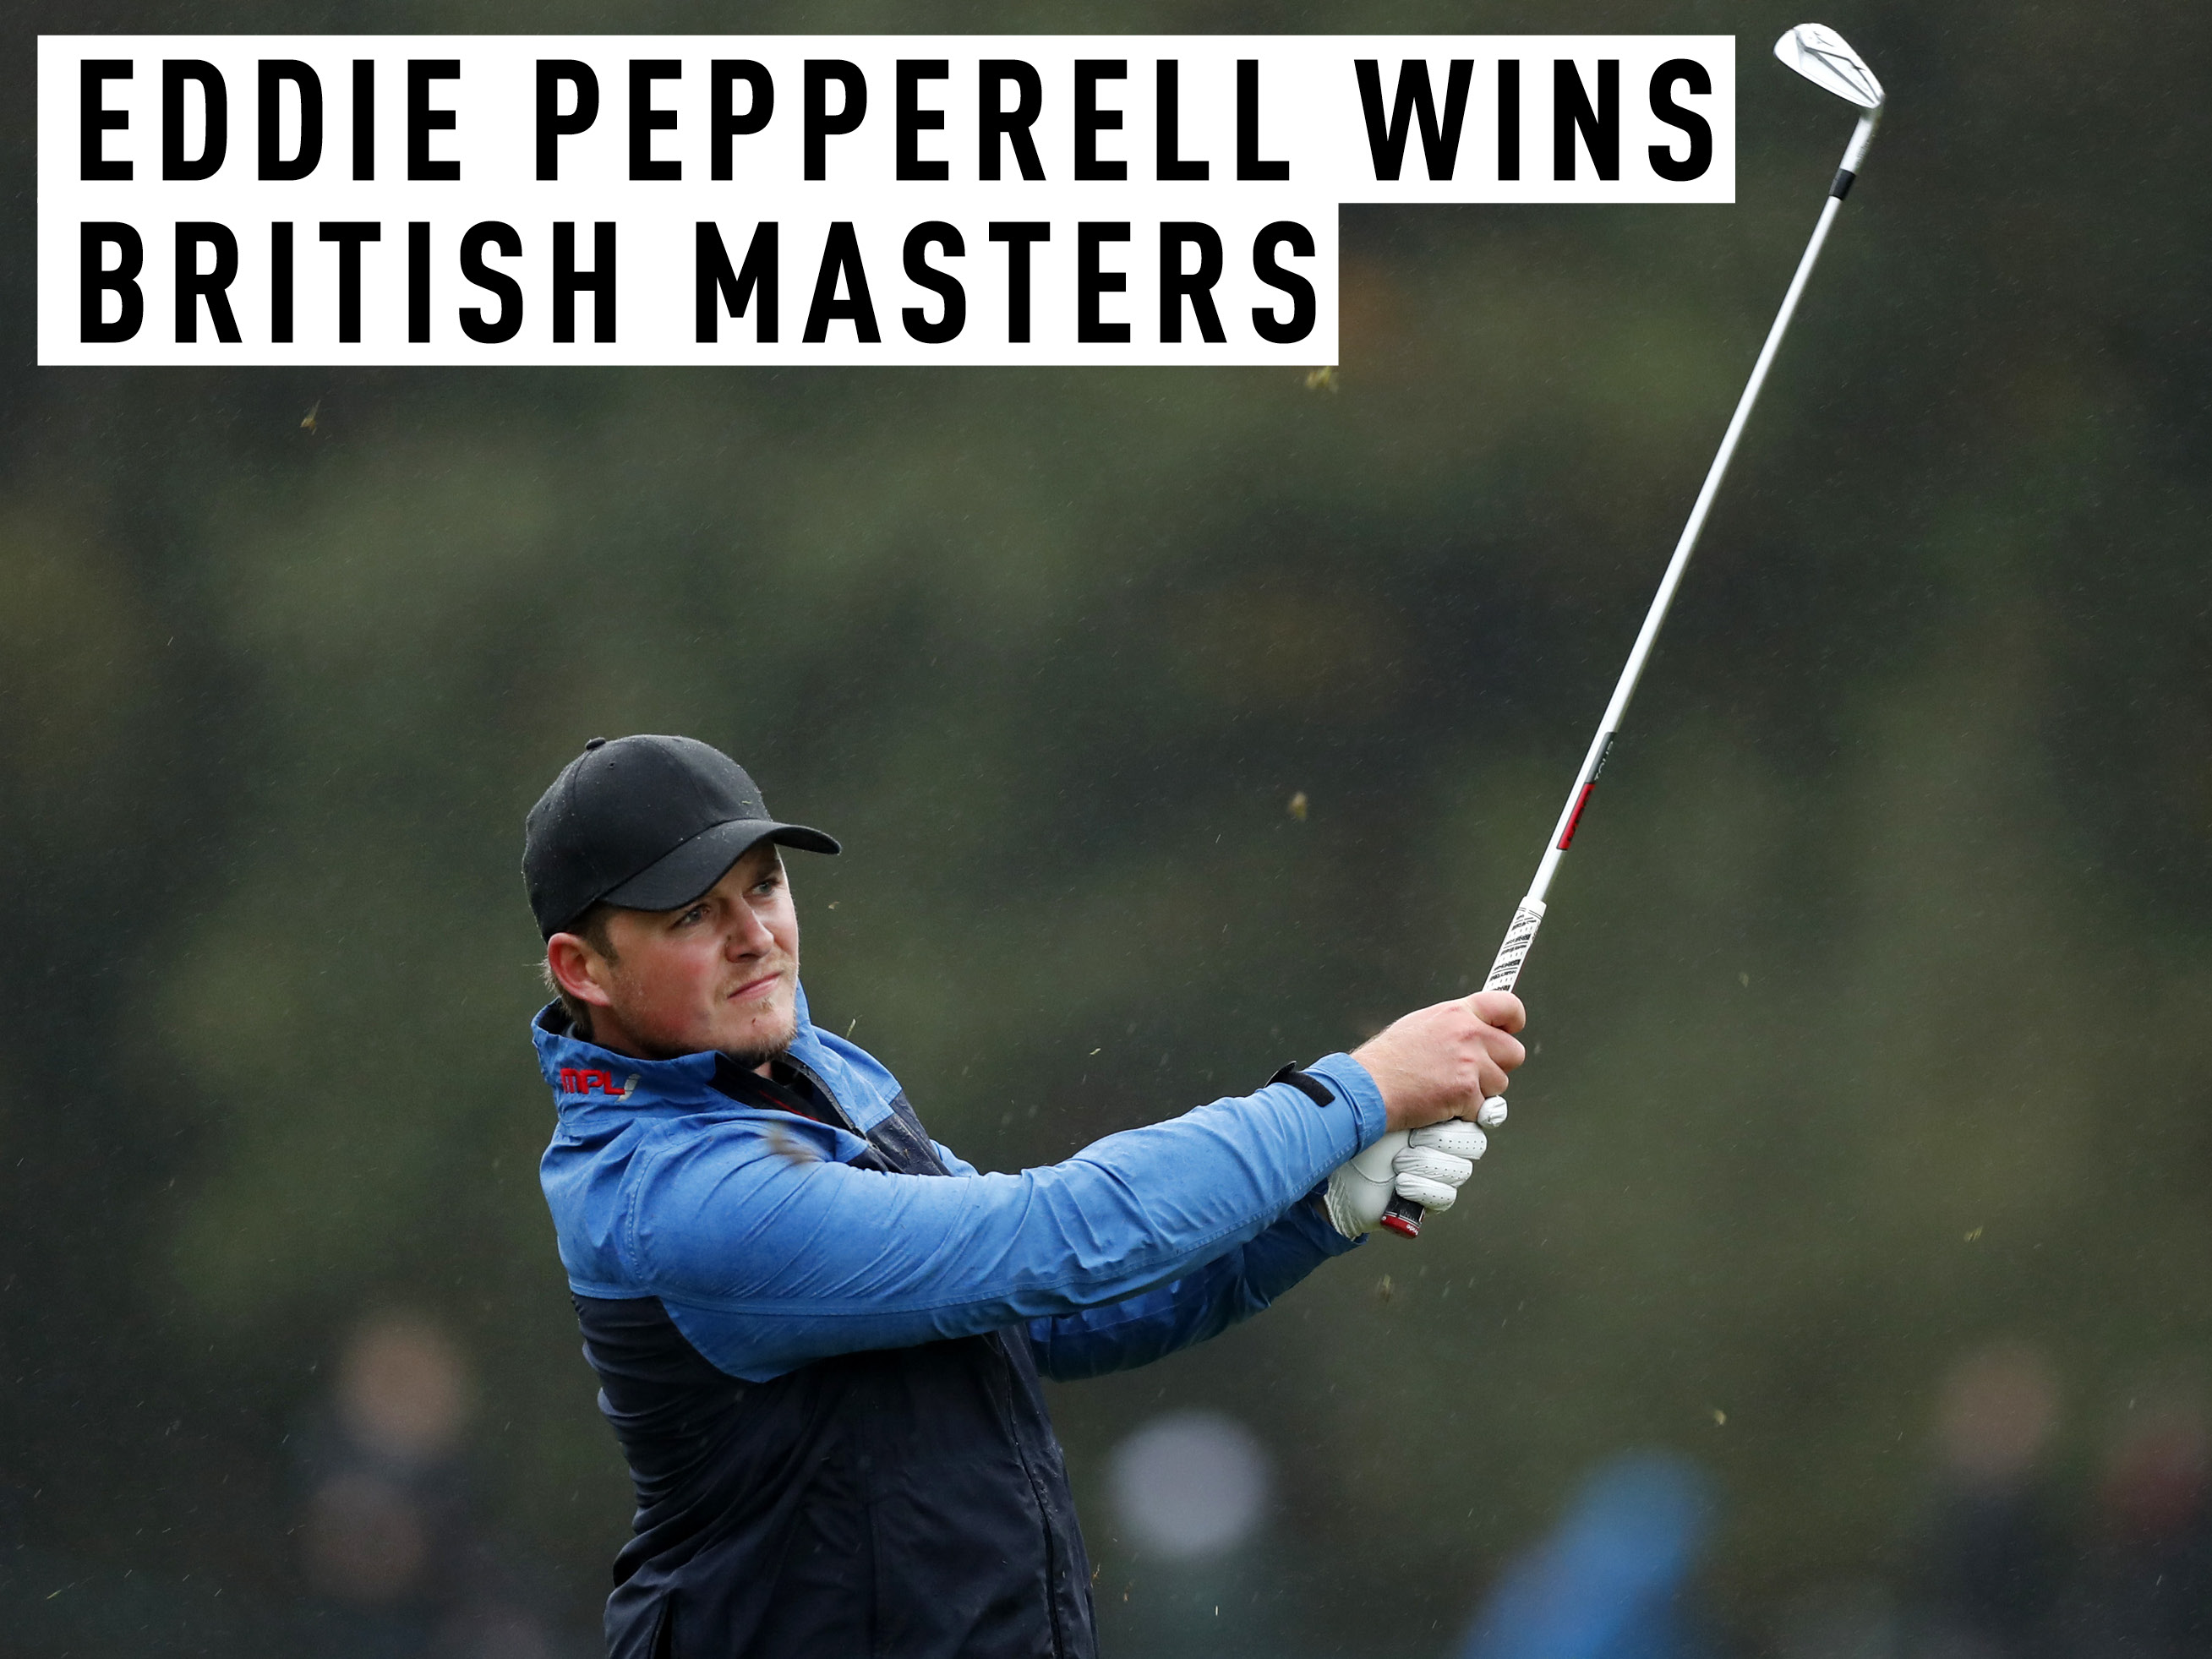 Eddie Pepperell Wins British Masters